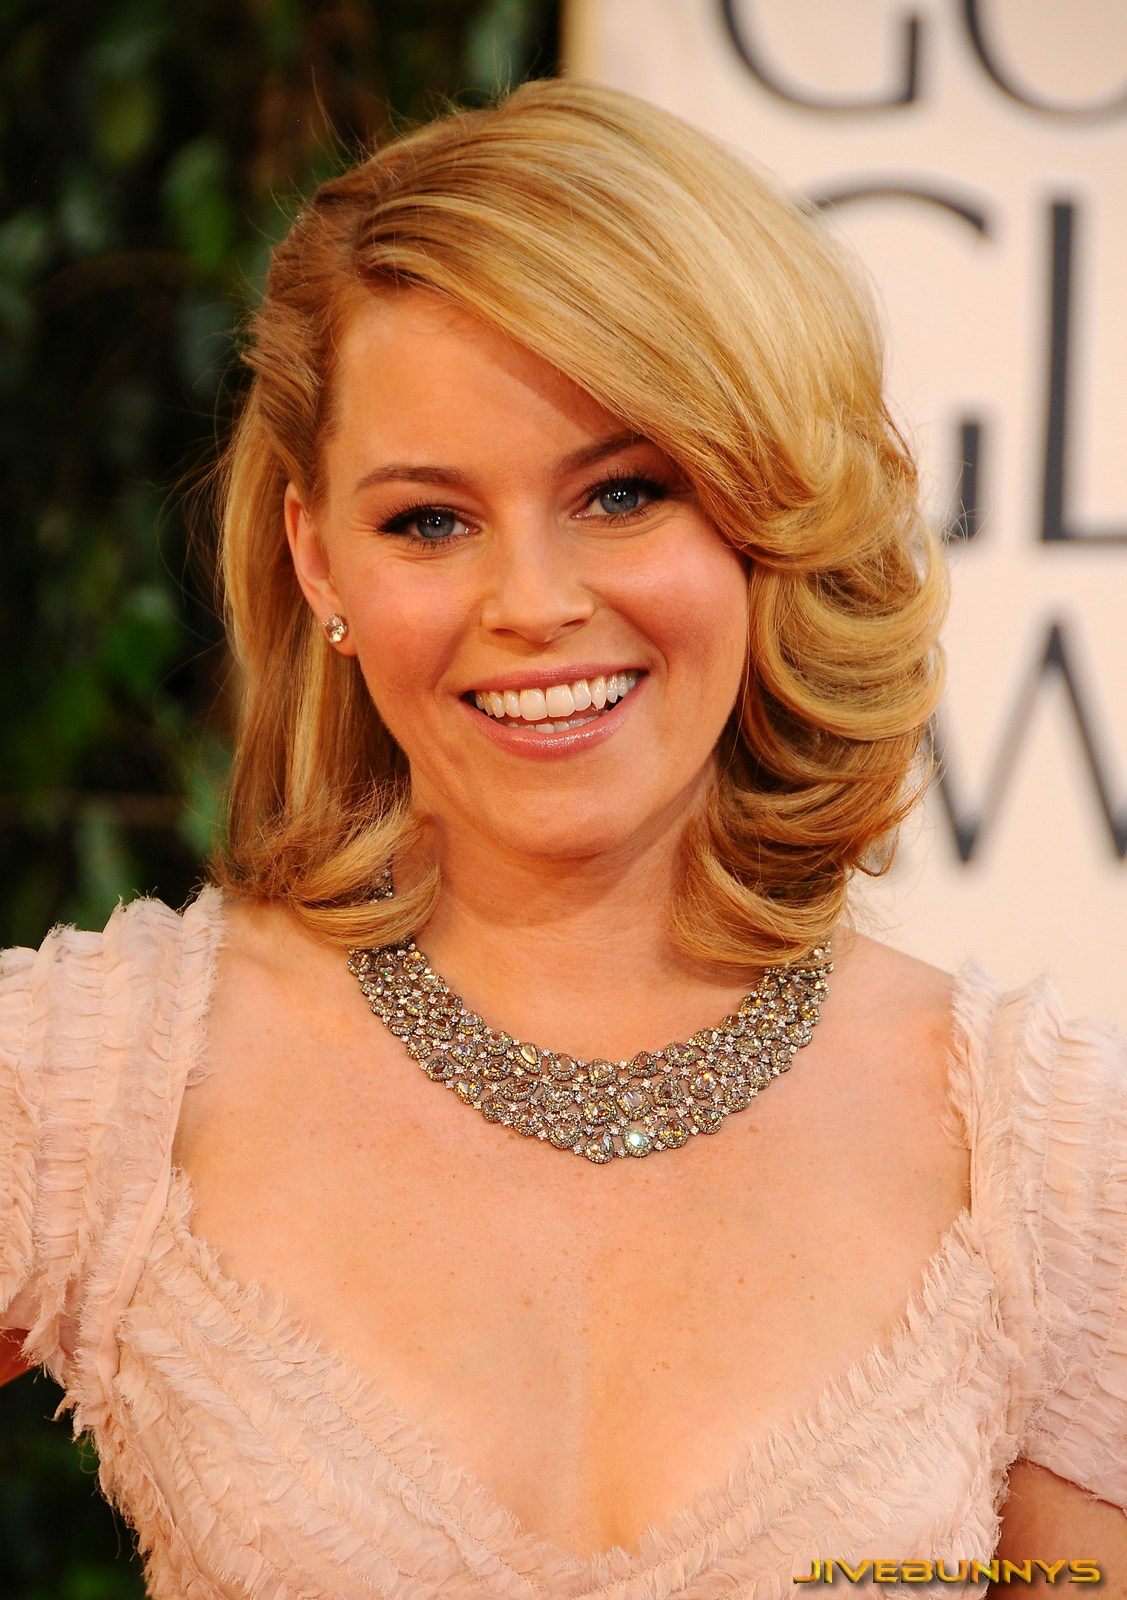 http://2.bp.blogspot.com/-k6RAIaFQTGg/T3HM4aT_bmI/AAAAAAAADKk/uGPst5i671U/s1600/elizabeth-banks-actress-celebrity-10160.jpg